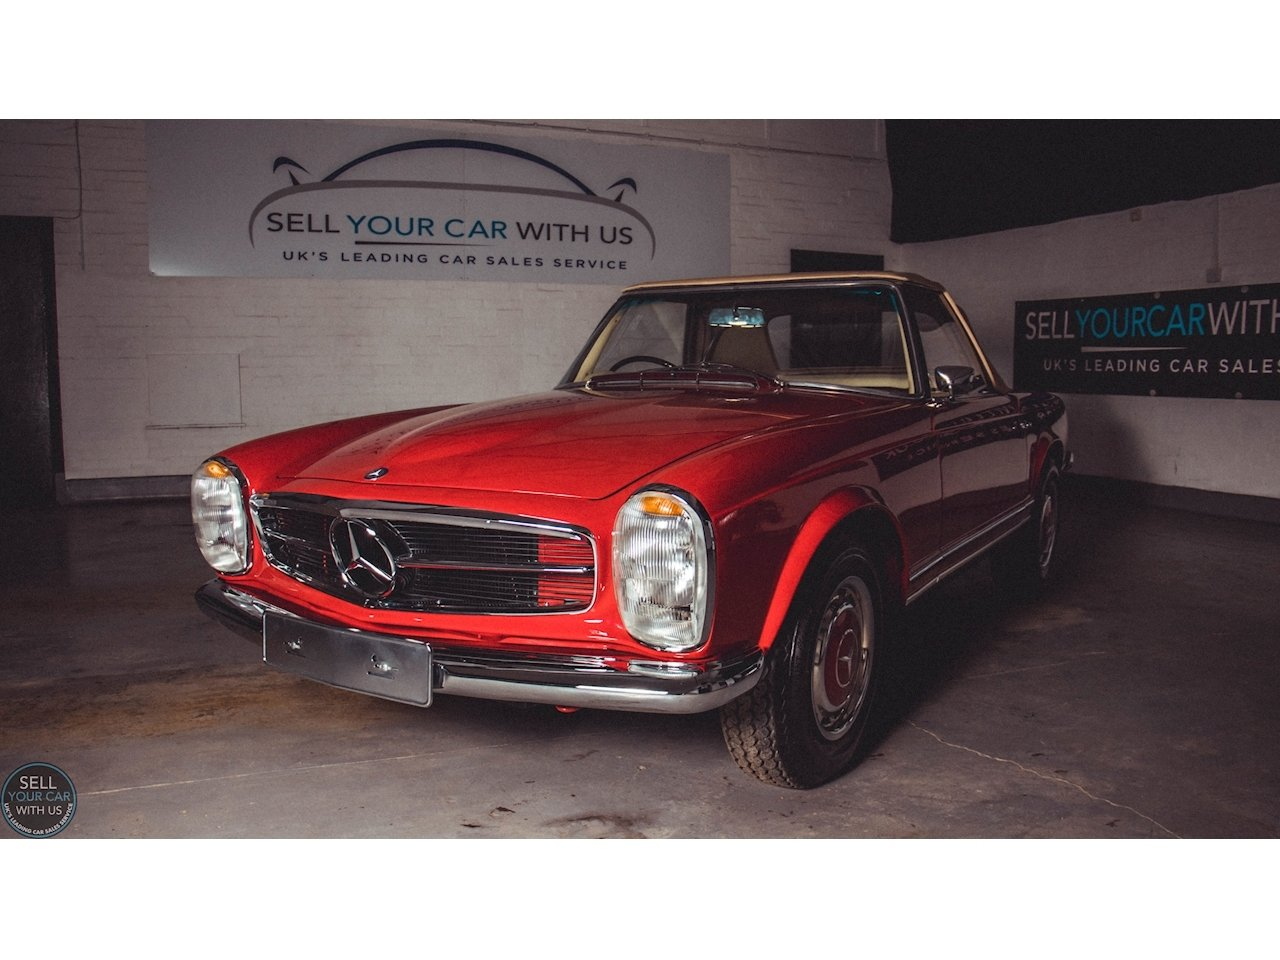 1967 Mercedes 250 SL PAGODA 2.5 2dr Convertiable Manual Petrol For Sale (picture 1 of 6)